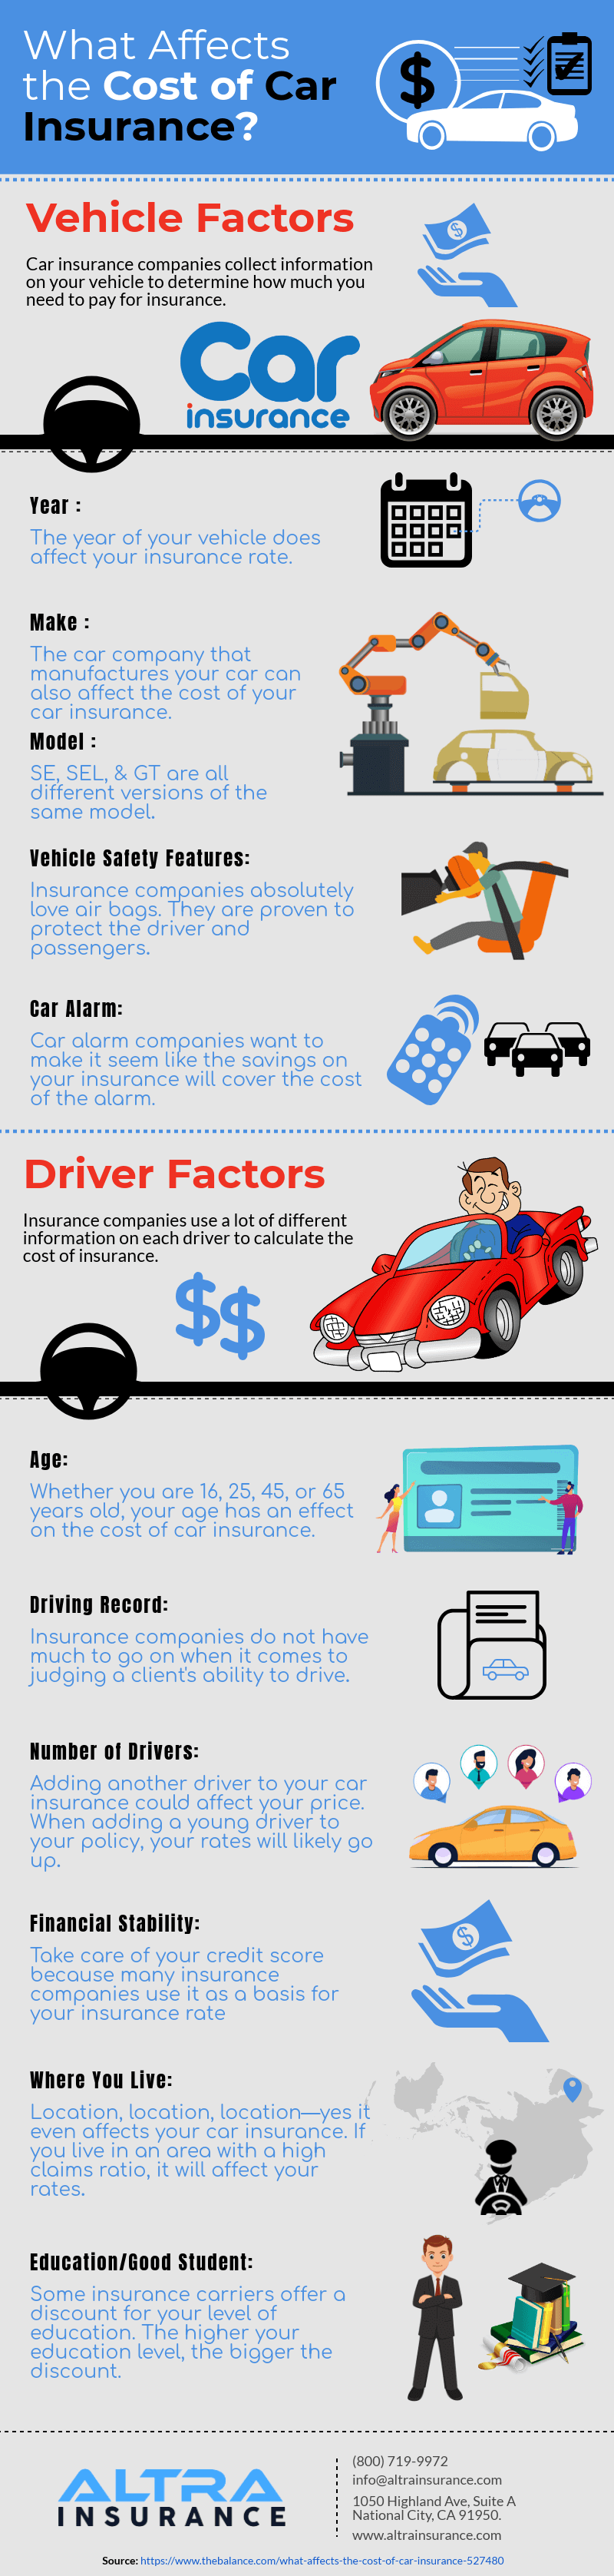 What Are Some Things That Affect Car Insurance Costs?